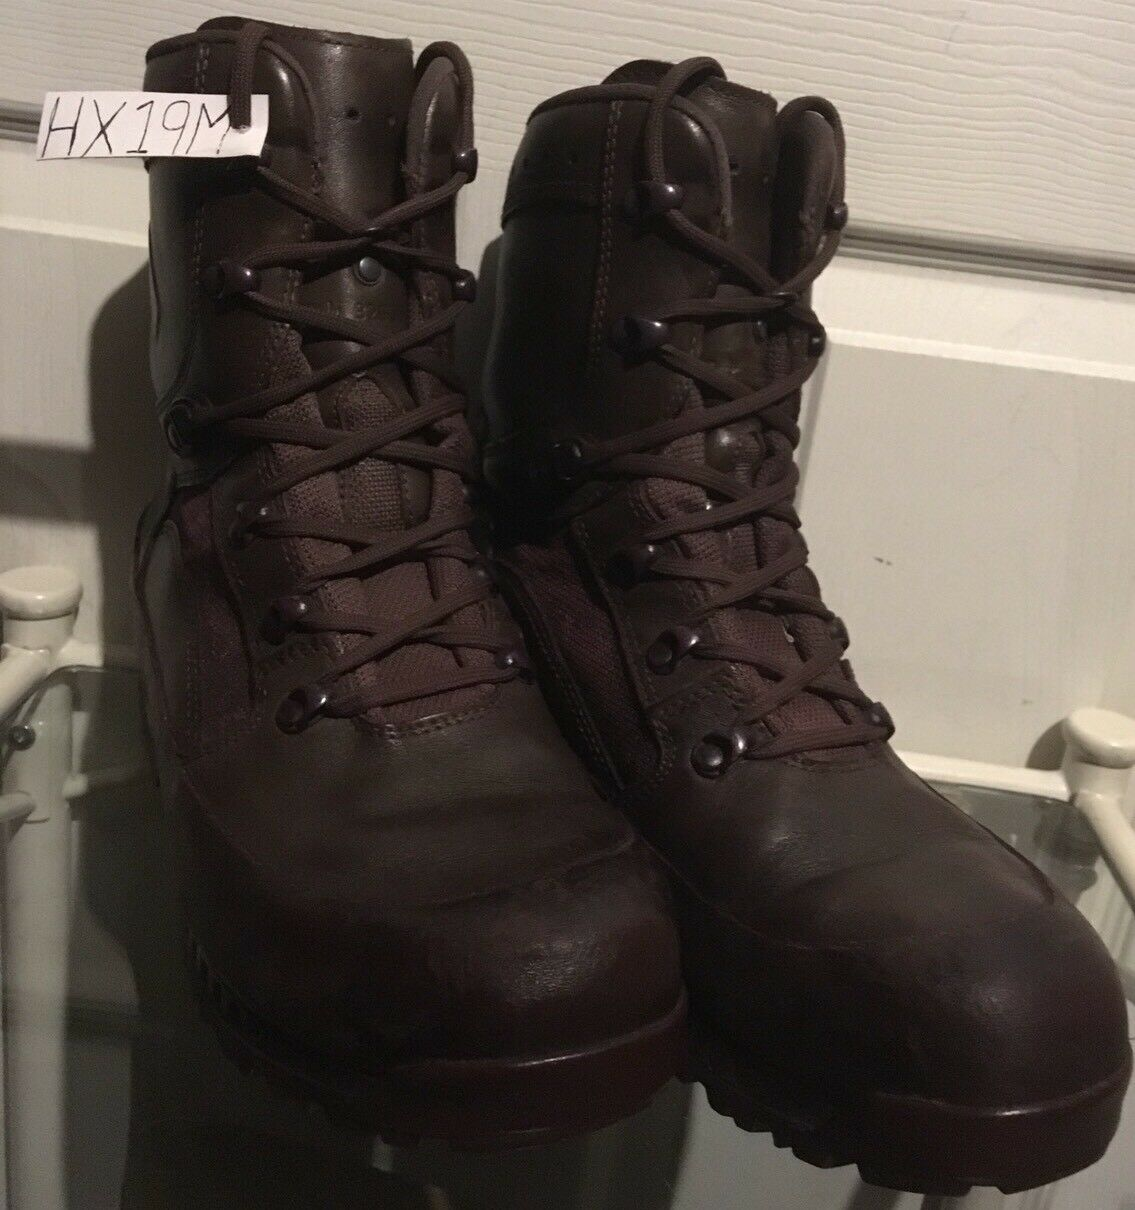 Haix Brown MTP Gore-Tex Waterproof Army Issue Combat Boots 9M HX19M